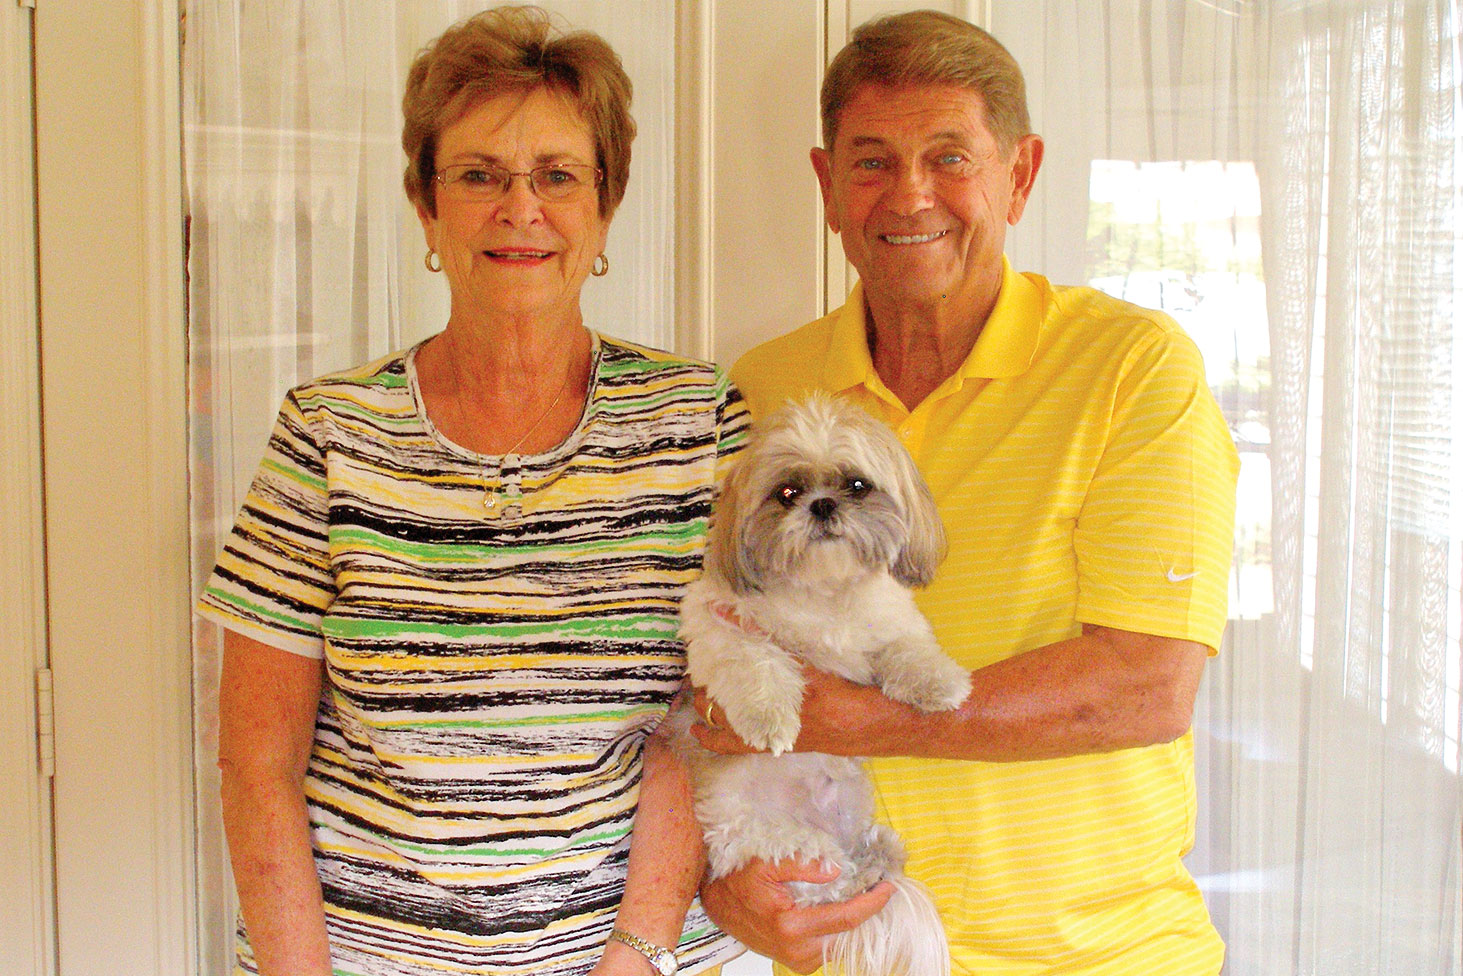 Pat and Jerry Younger with their guard dog Abby